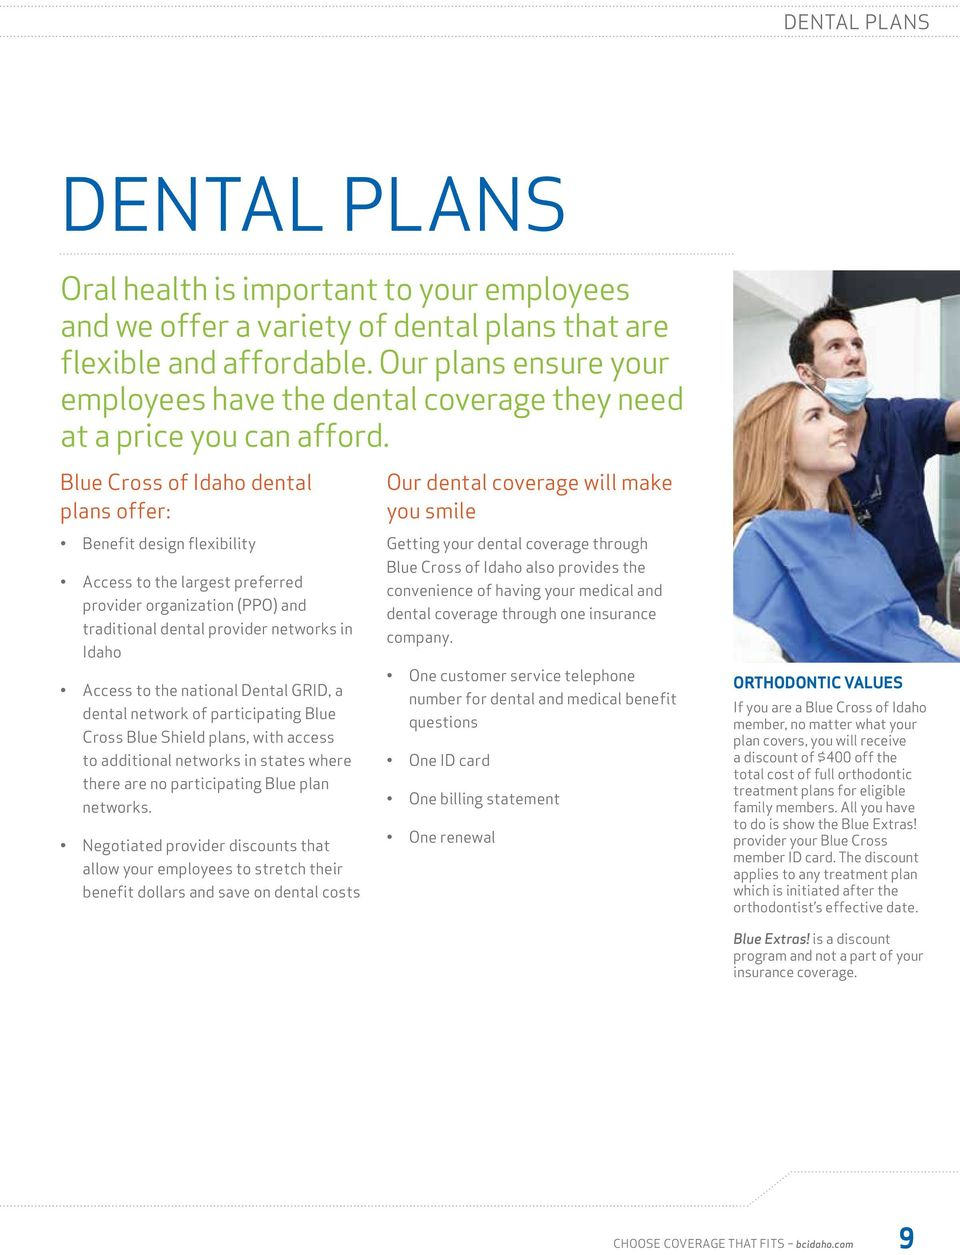 Blue Cross of Idaho dental plans offer: Benefit design flexibility Access to the largest preferred provider organization (PPO) and traditional dental provider networks in Idaho Access to the national